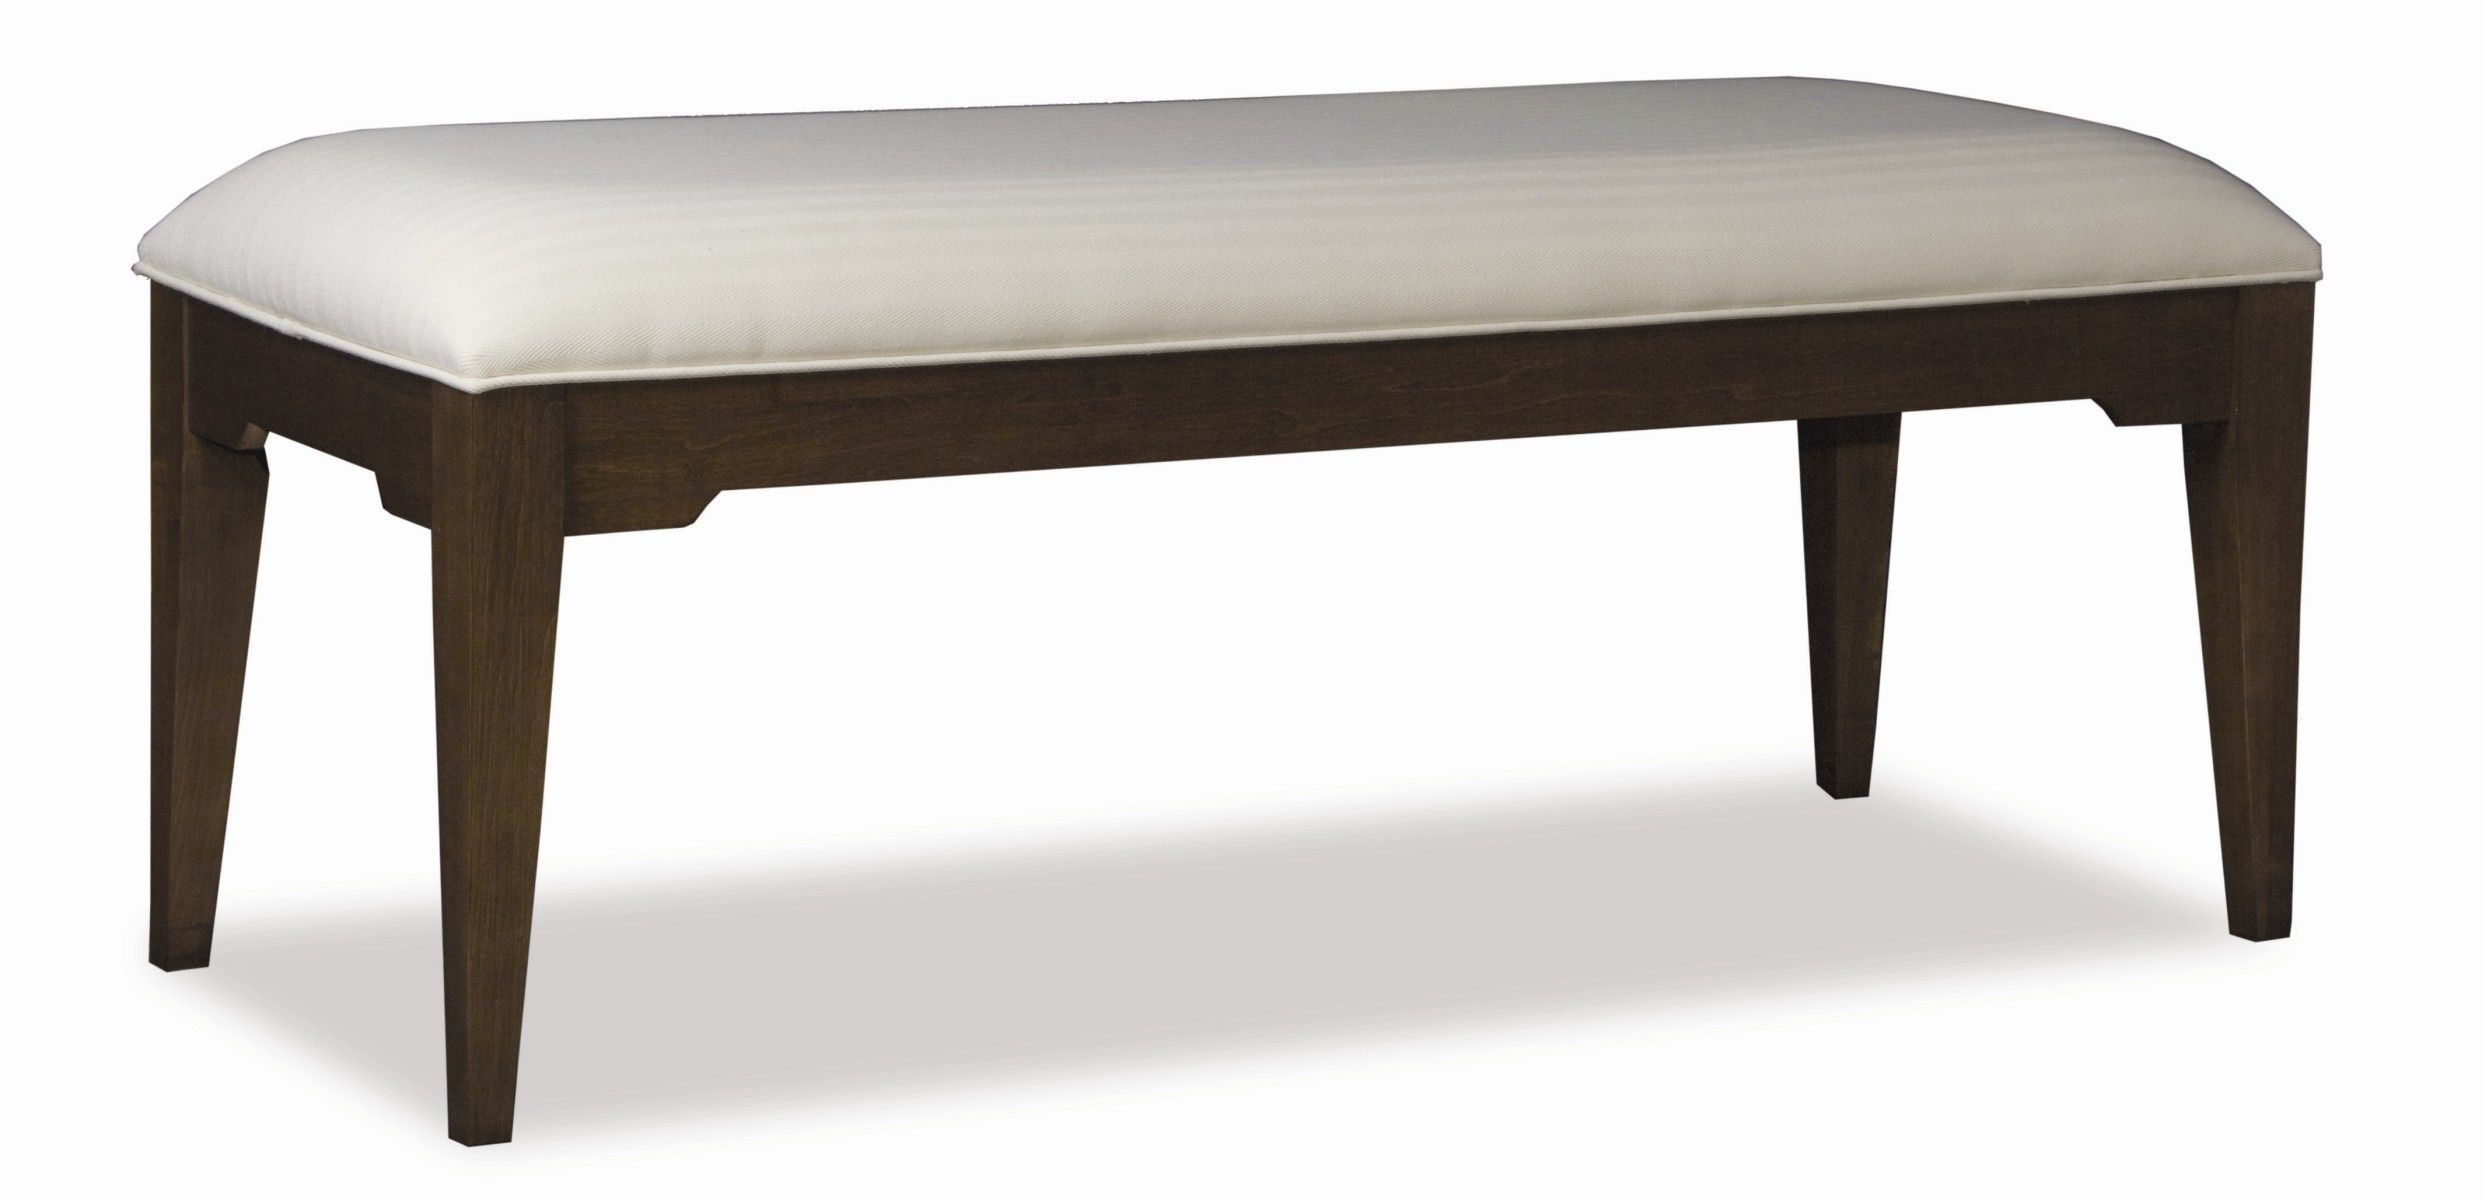 Durham Furniture Contemporary Bench 900 010A